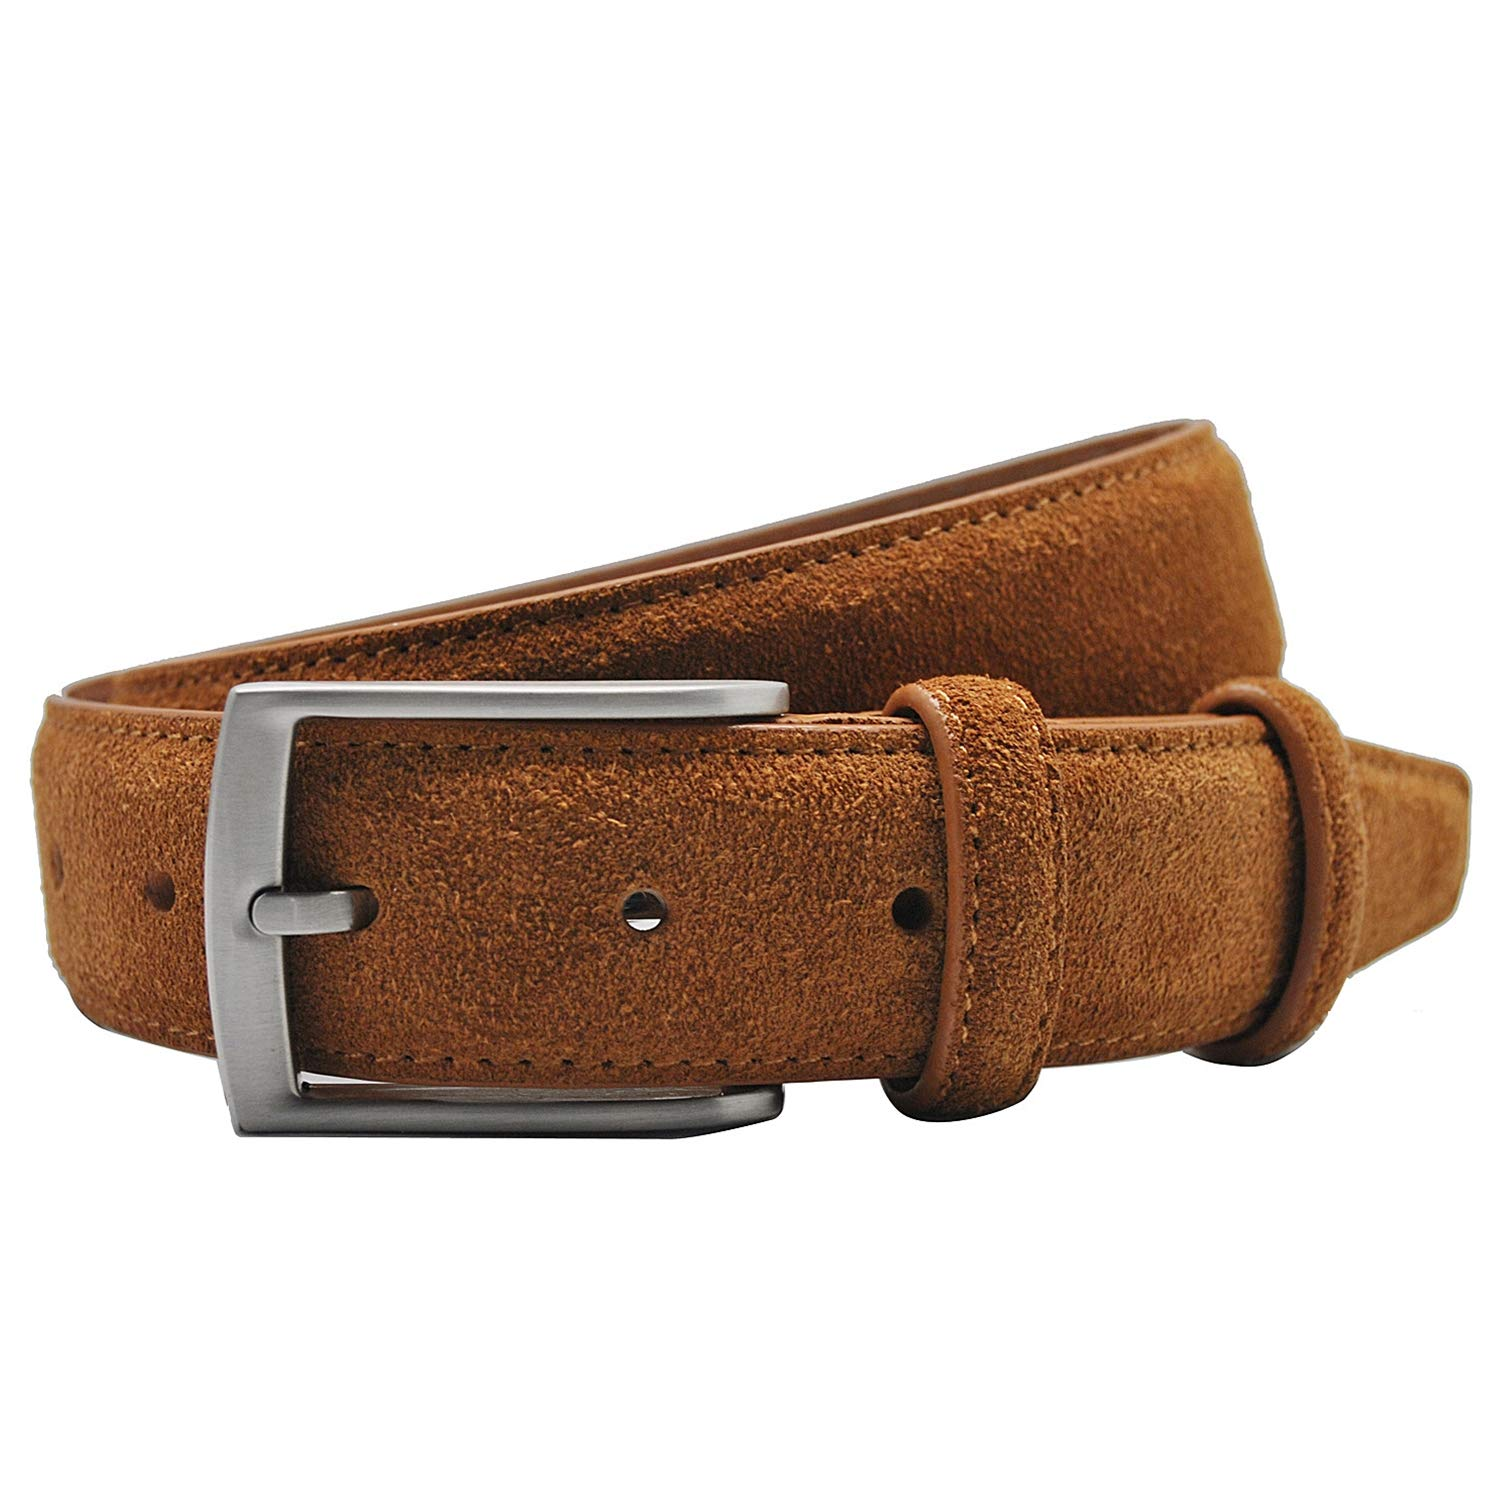 Mens Suede Leather Belt Casual Belts with Pin Buckle for Jeans Dress Pant